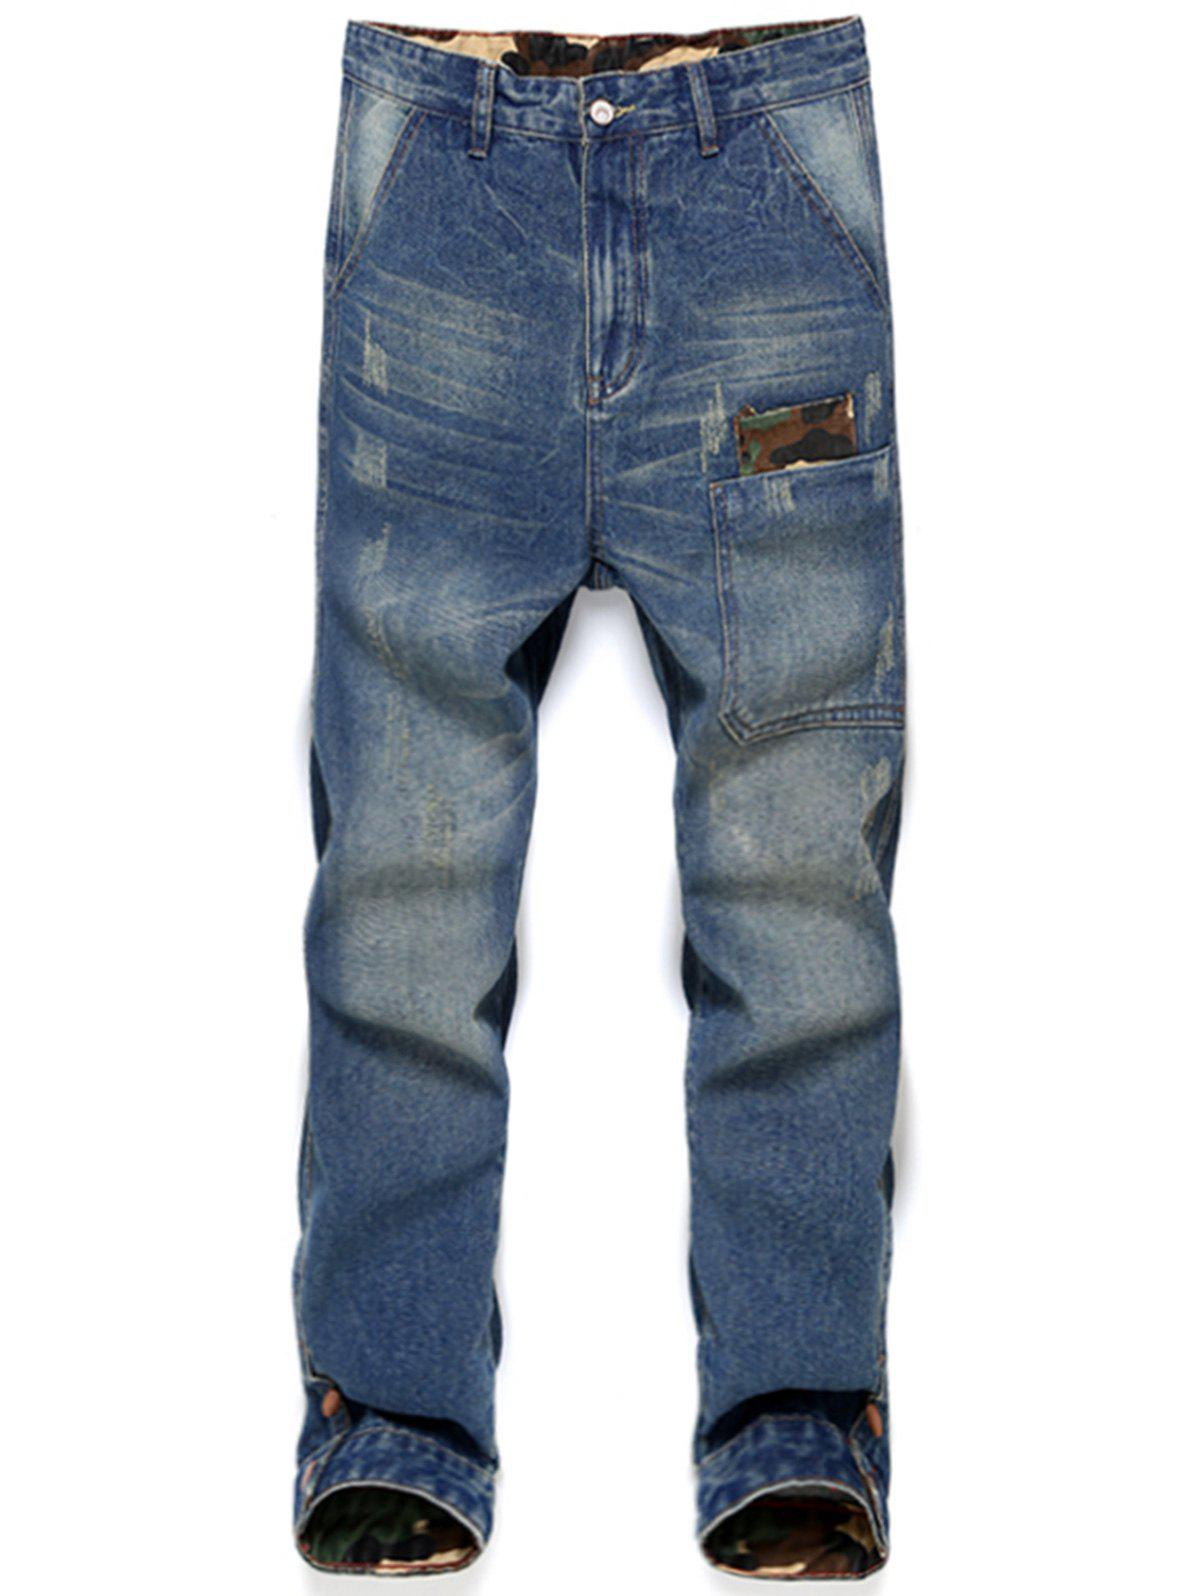 Bleach Wash Distressed Harem Jeans - DENIM BLUE 33